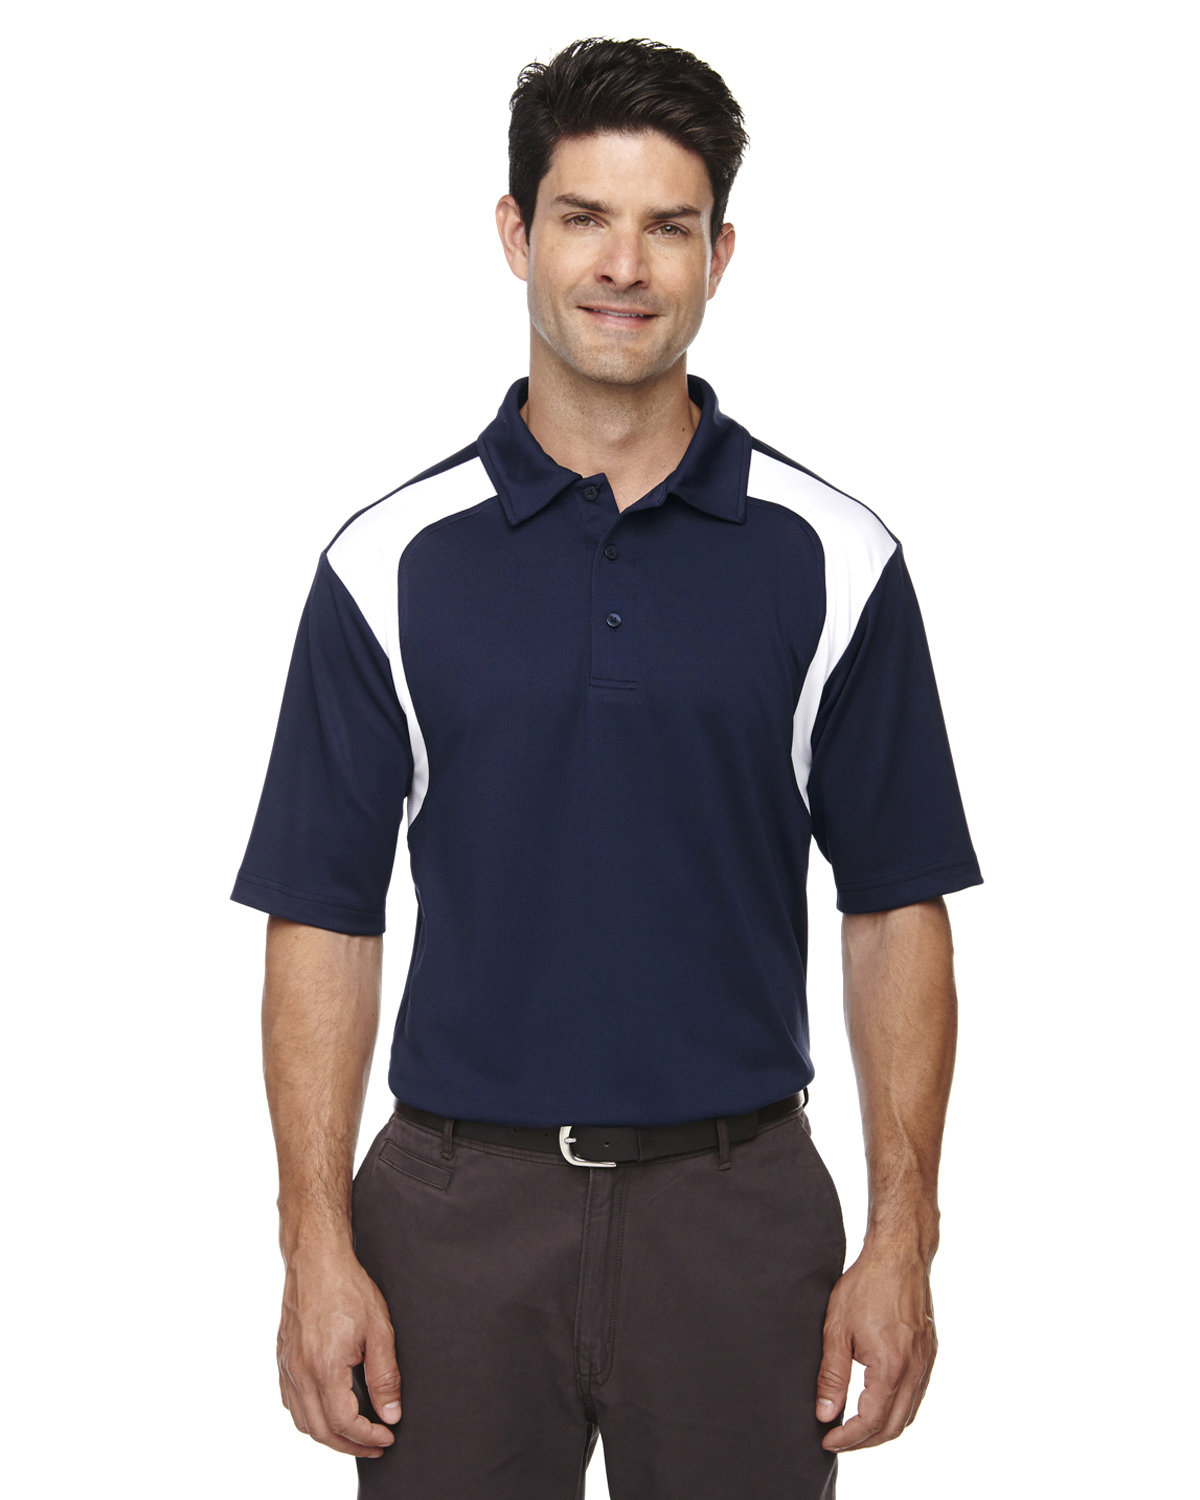 Extreme Men's Eperformance™ Colorblock Textured Polo CLASSIC NAVY